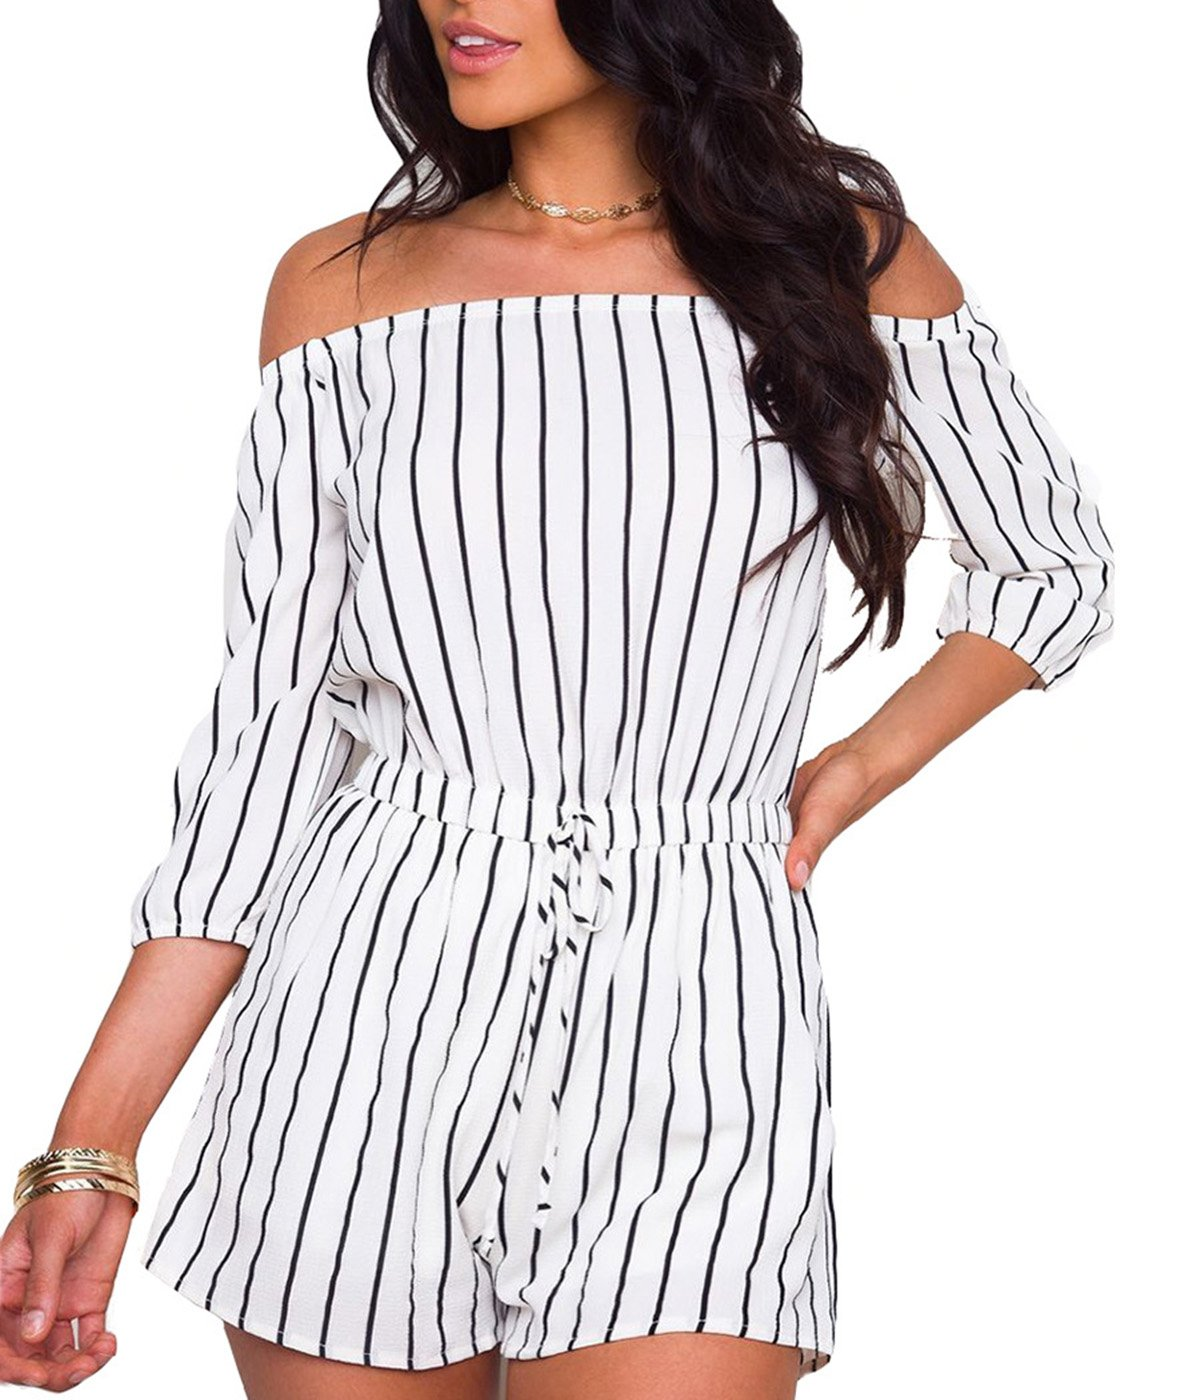 Tiaoqi Sexy Rompers for Women,Boat Neck Off The Shoulder Striped Rompers 3/4 Sleeves White Rompers (White, XL)